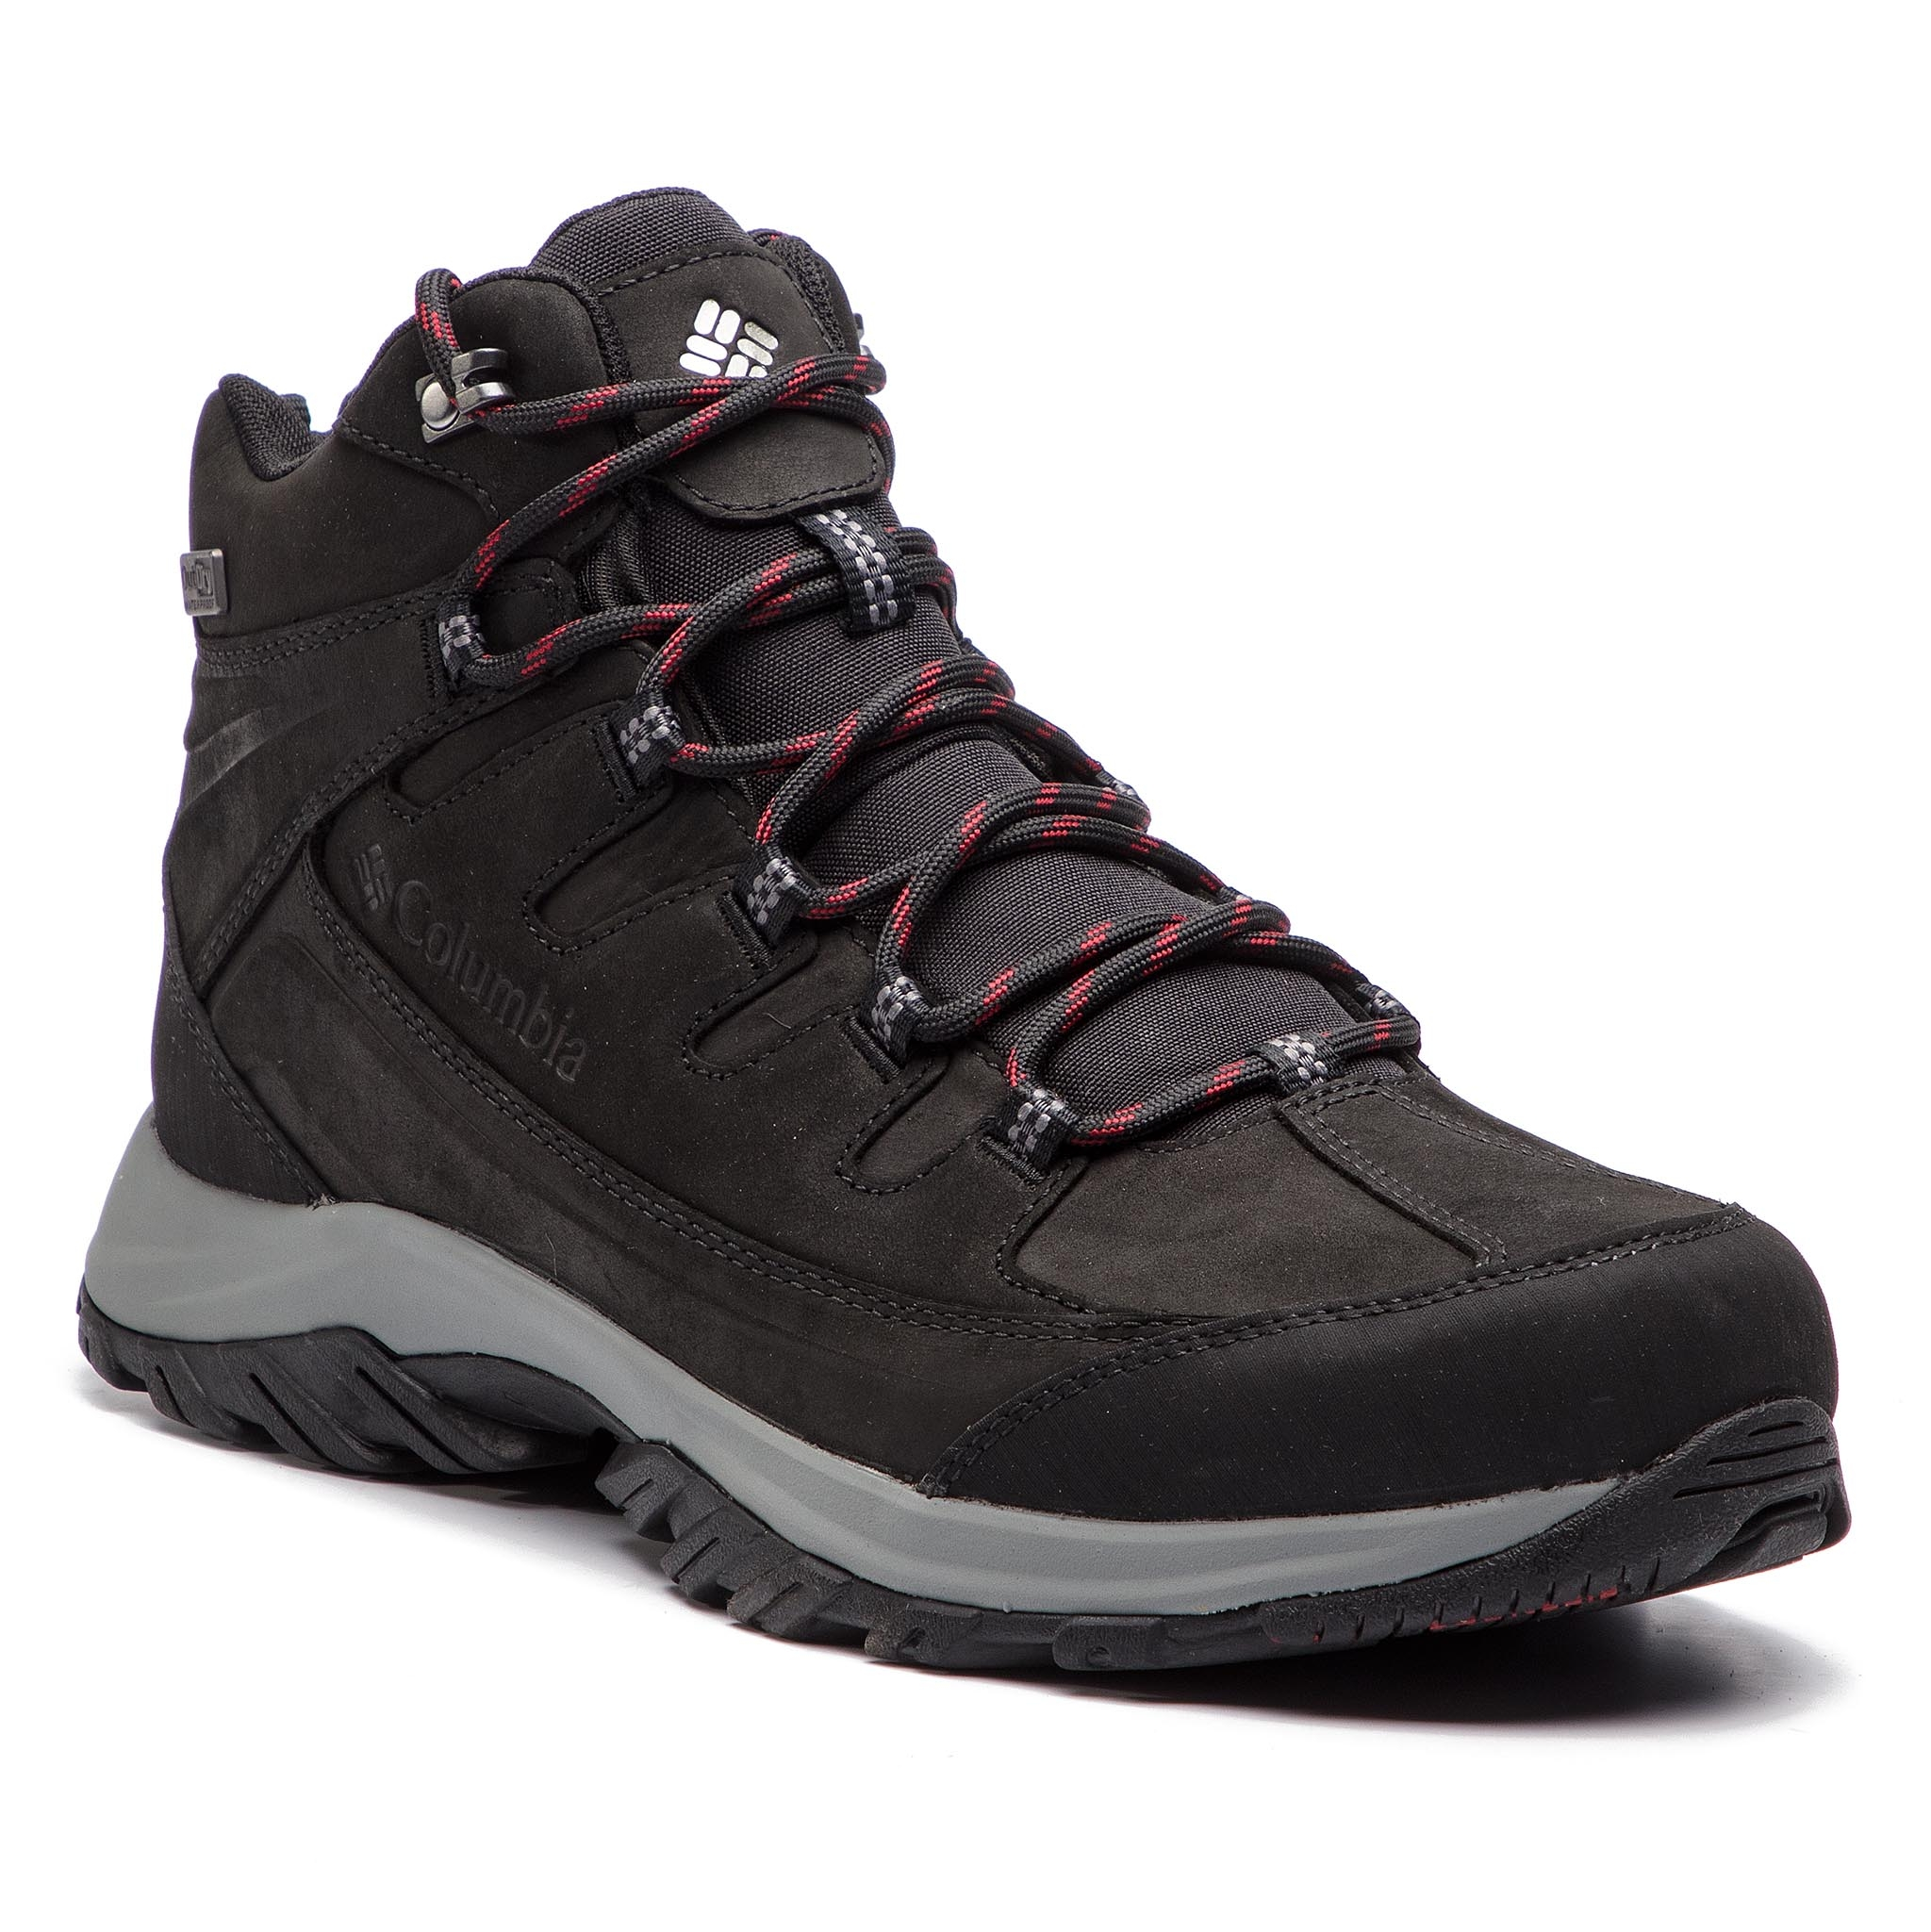 Trekkings Columbia - Terrebonne Ii Mid Outdry Bm5518 Black/Lux 010 imagine epantofi.ro 2021